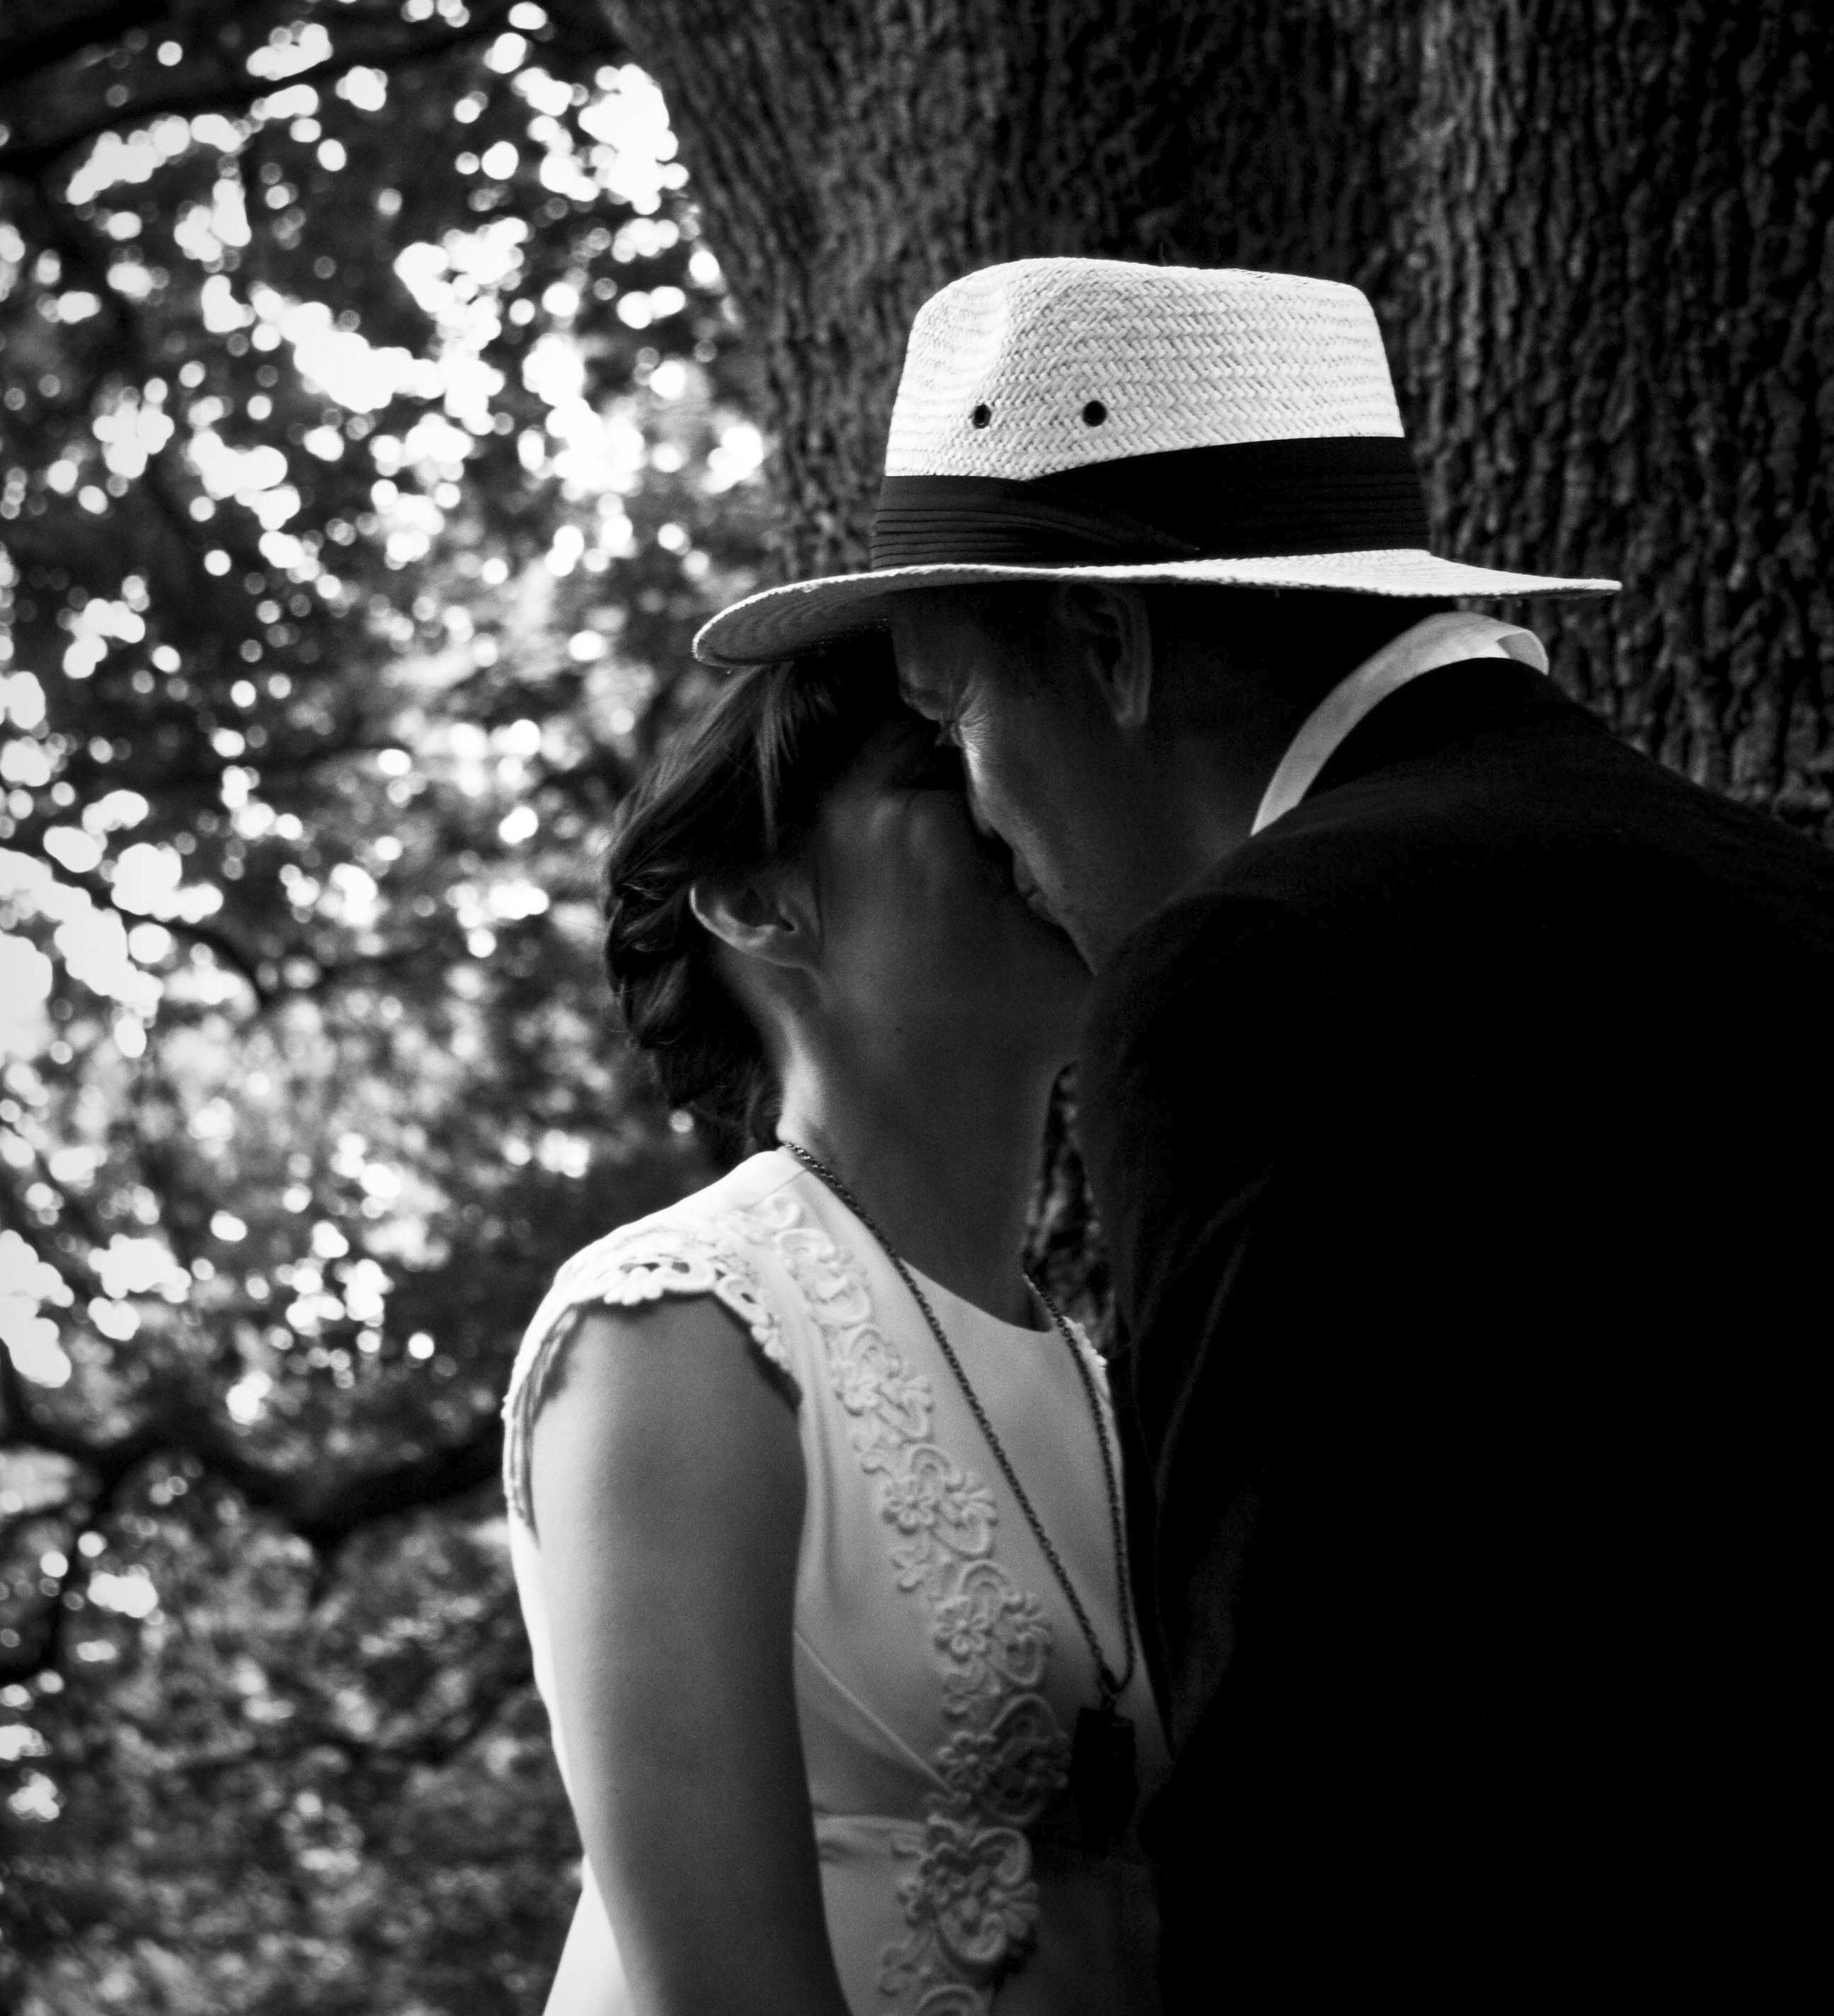 - Elena has an extraordinary ability to capture emotion in her work. Our wedding photos shot by her are the most intimate and beautiful photos that absolutely captured the atmosphere of our special celebration back in 2012 - Heli & Oli Wade